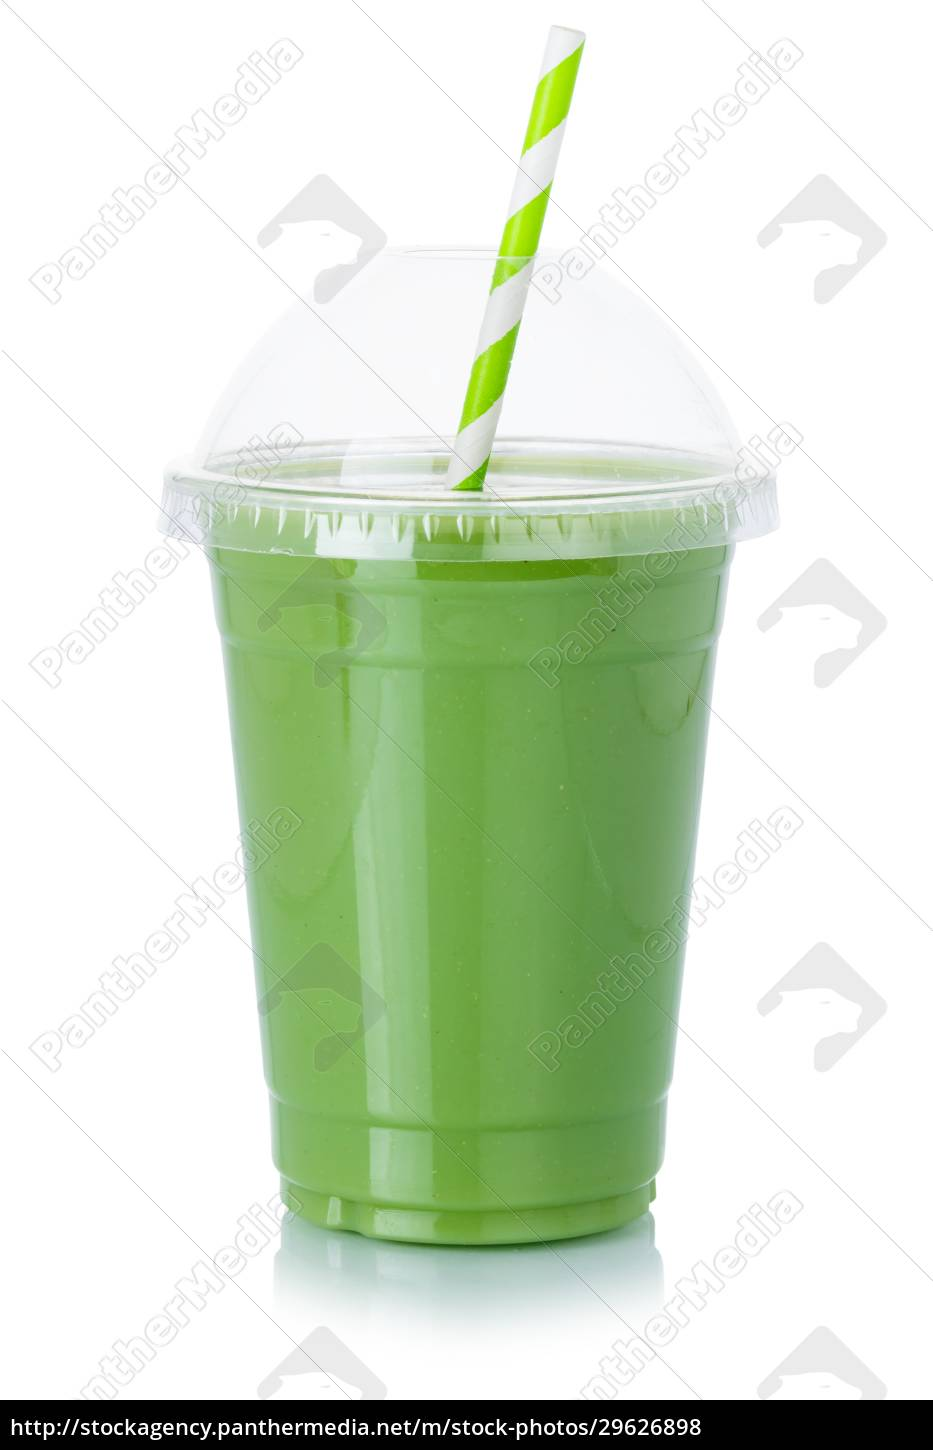 fruit, juice, green, smoothie, straw, drink - 29626898